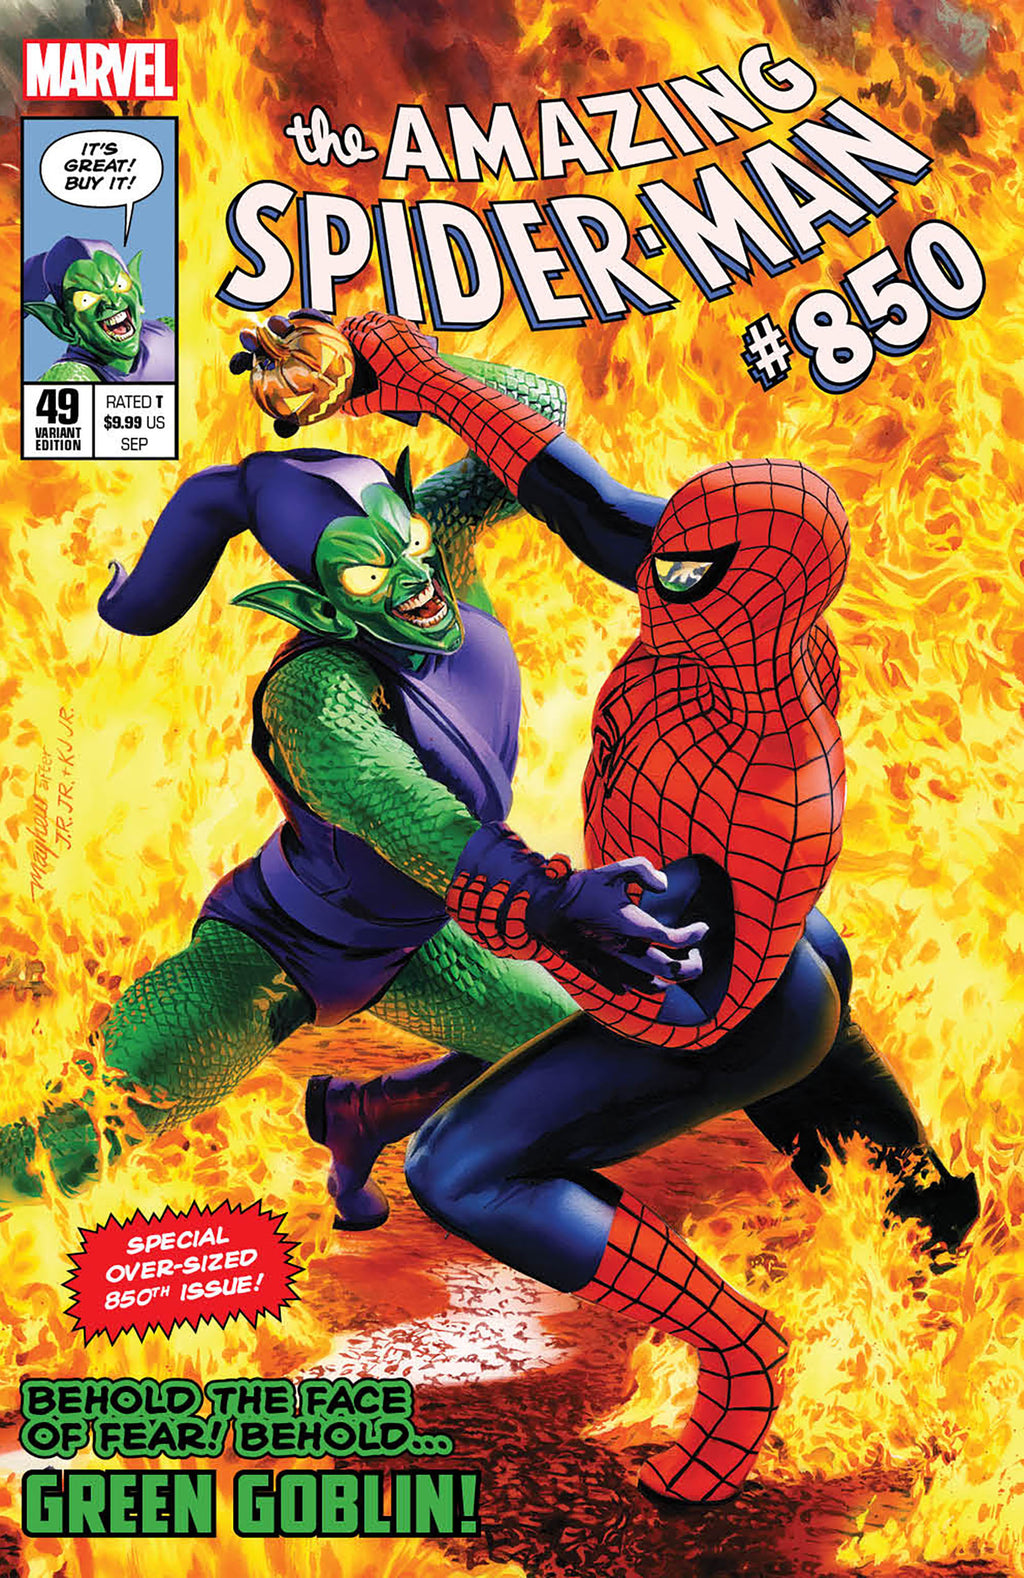 AMAZING SPIDER-MAN #49 )LEGACY #850) MIKE MAYHEW VARIANT OPTIONS